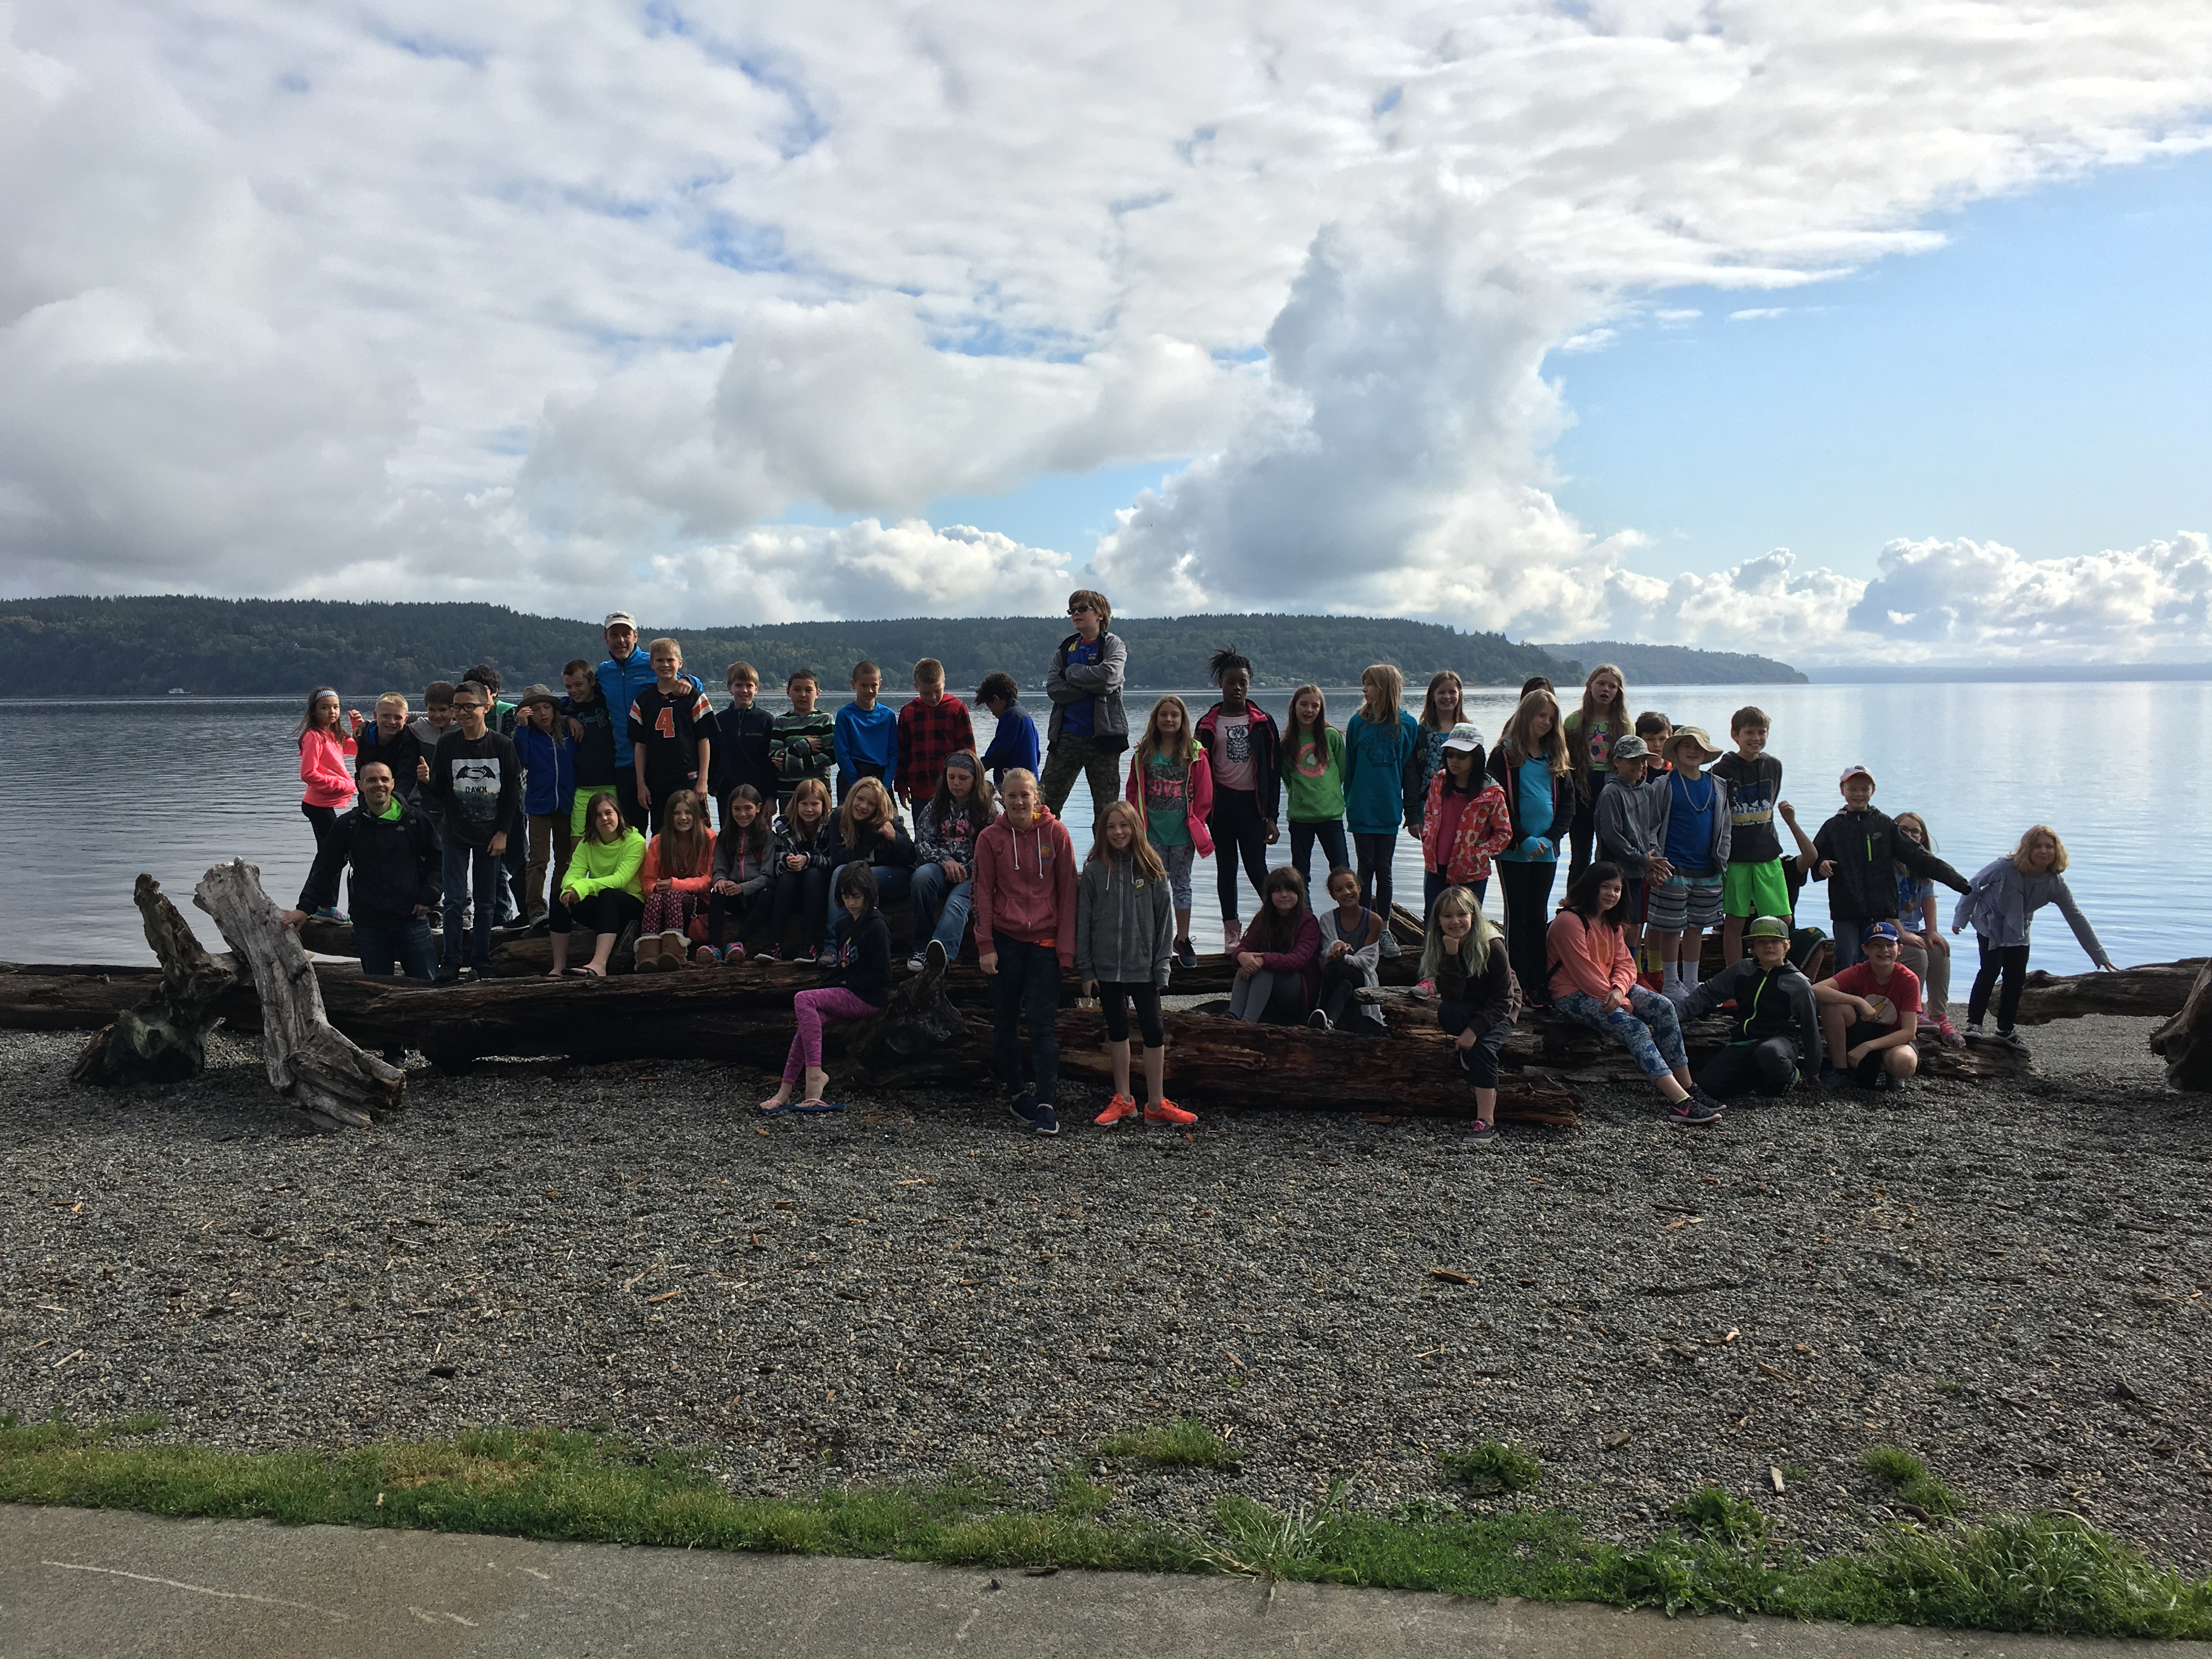 Group photo on the beach at Defiance Park